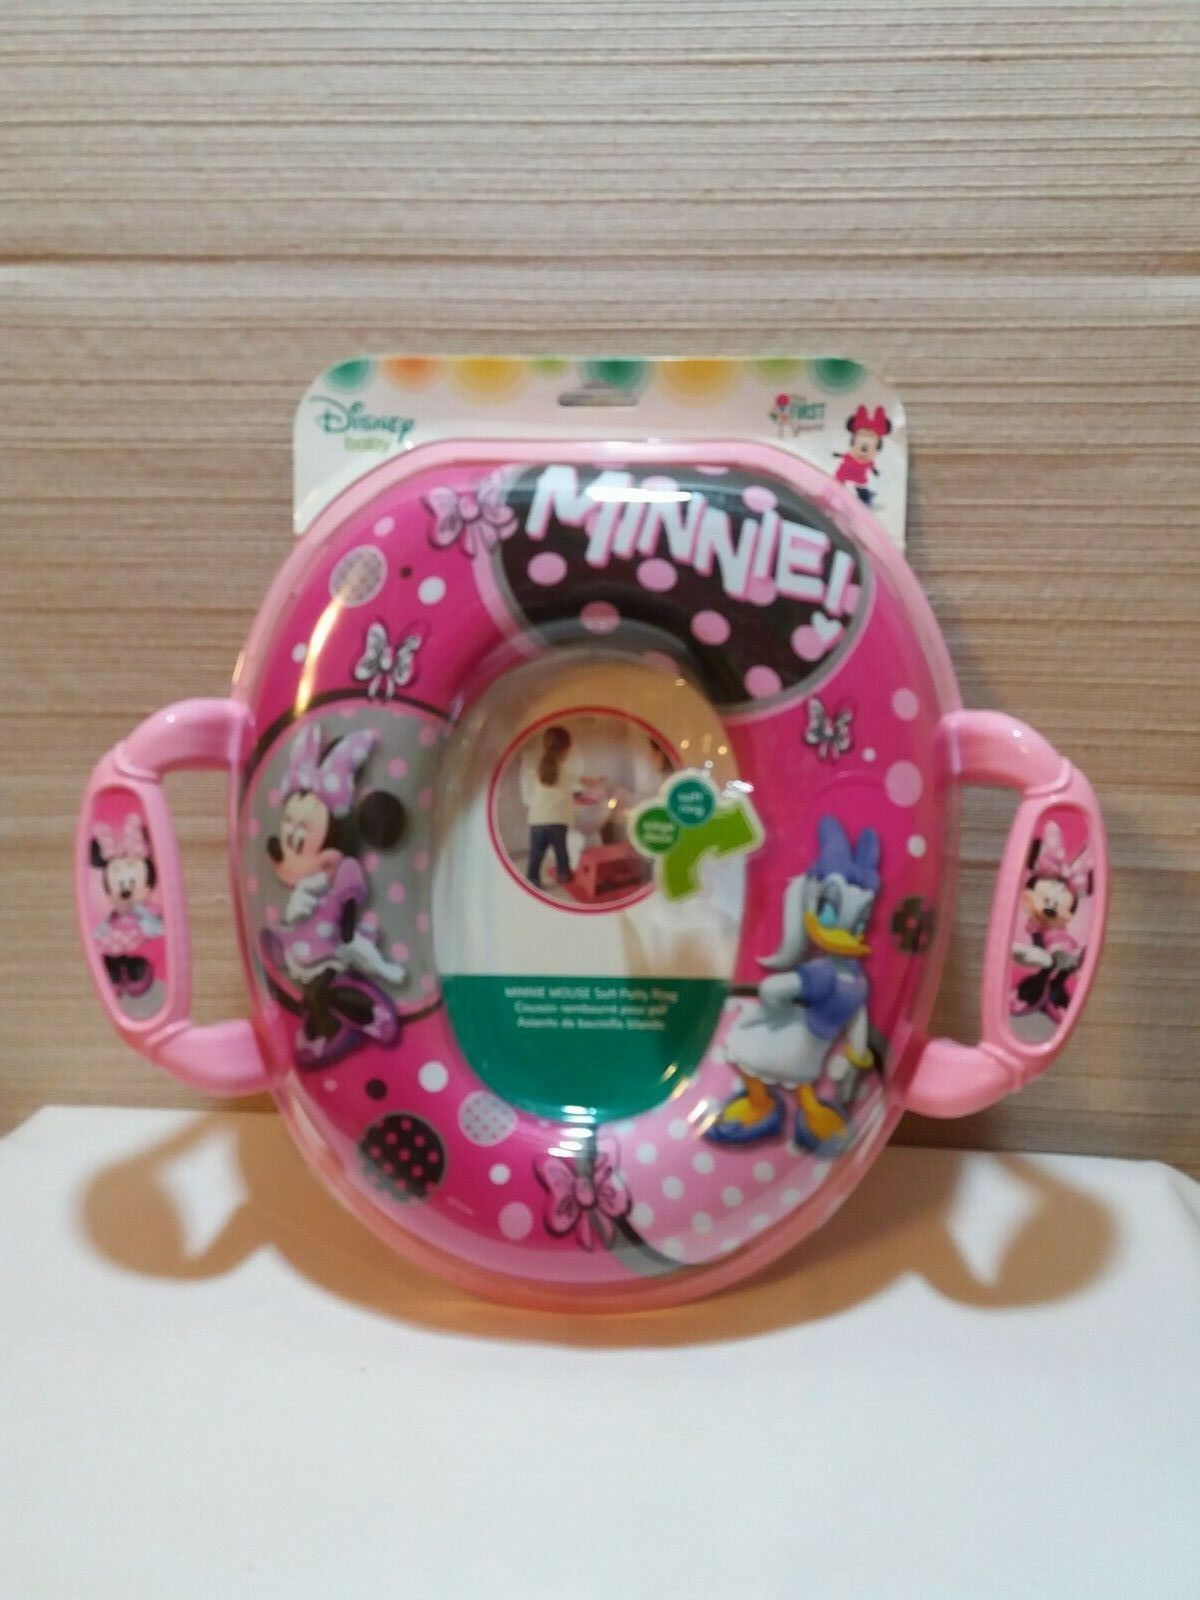 The First Years Disney Soft Potty Seat Soft Cushion Comfort